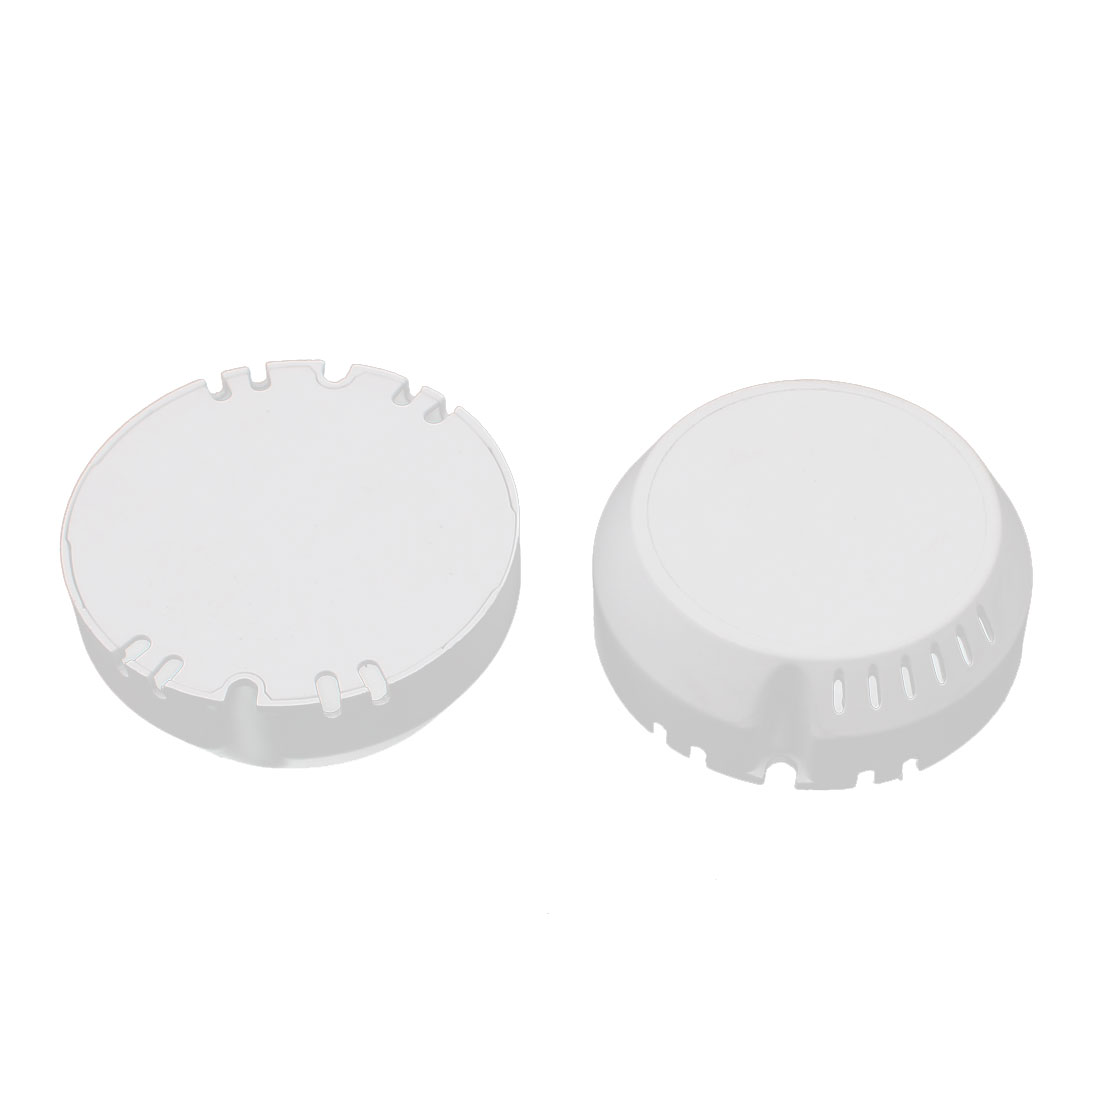 2Pcs 65 x 23mm White Plastic Round Shape Box Case for LED Power Supply Driver